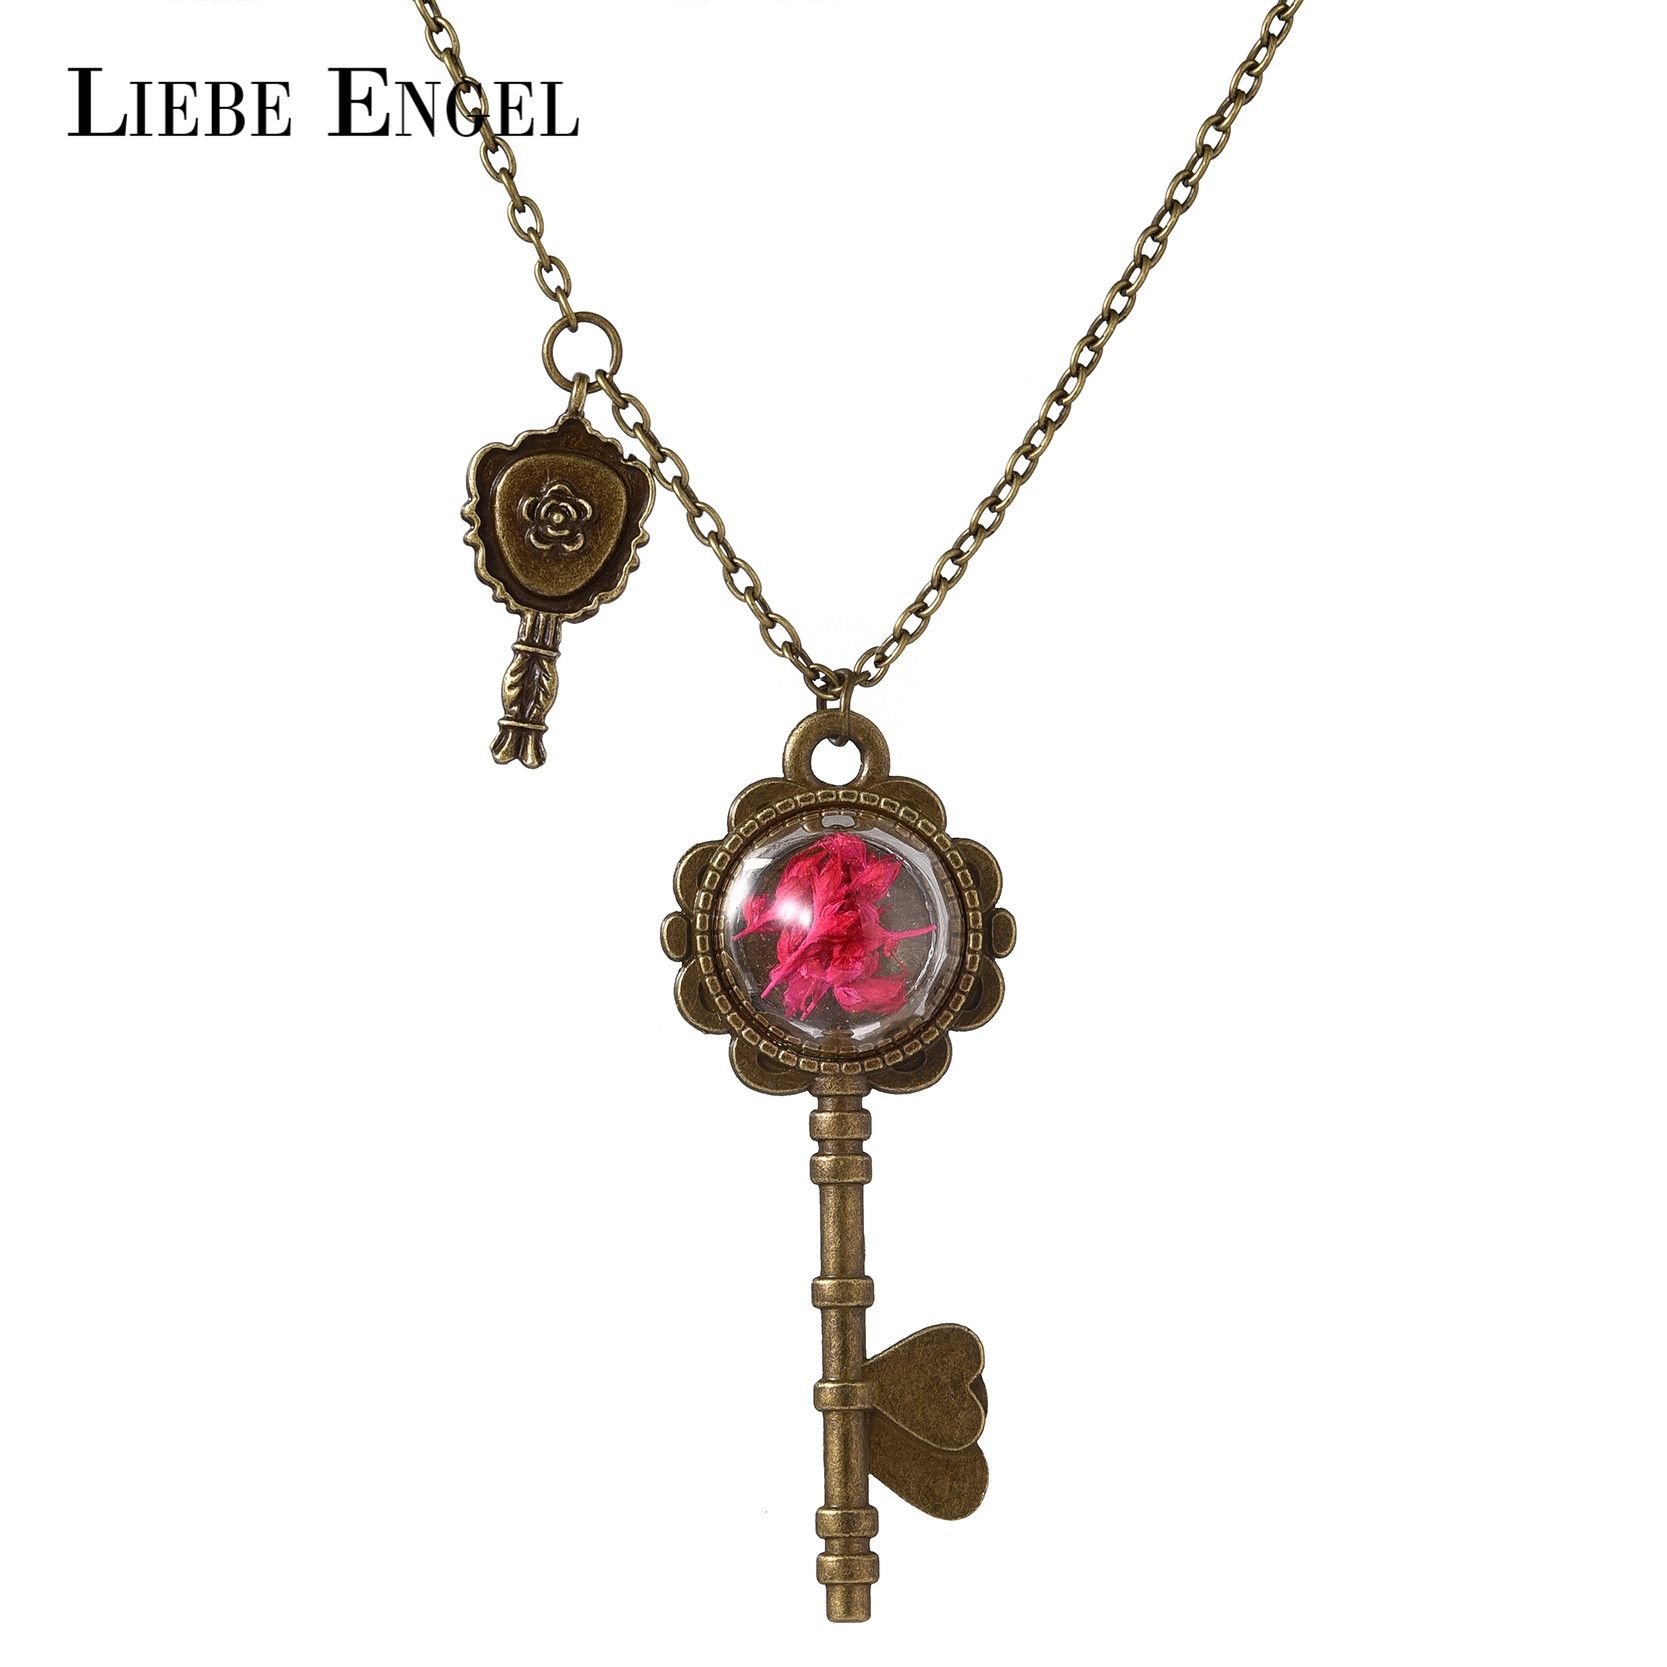 Find More Pendant Necklaces Information about LIEBE ENGEL Fashion Dried Flower Key Shape Necklace & Pendant Vintage Long Sweater Chain Jewelry Glass Statement Necklace Women,High Quality jewelry shamballa,China jewelry cream Suppliers, Cheap jewelry chains by the inch from LIEBE ENGEL Official Store on Aliexpress.com